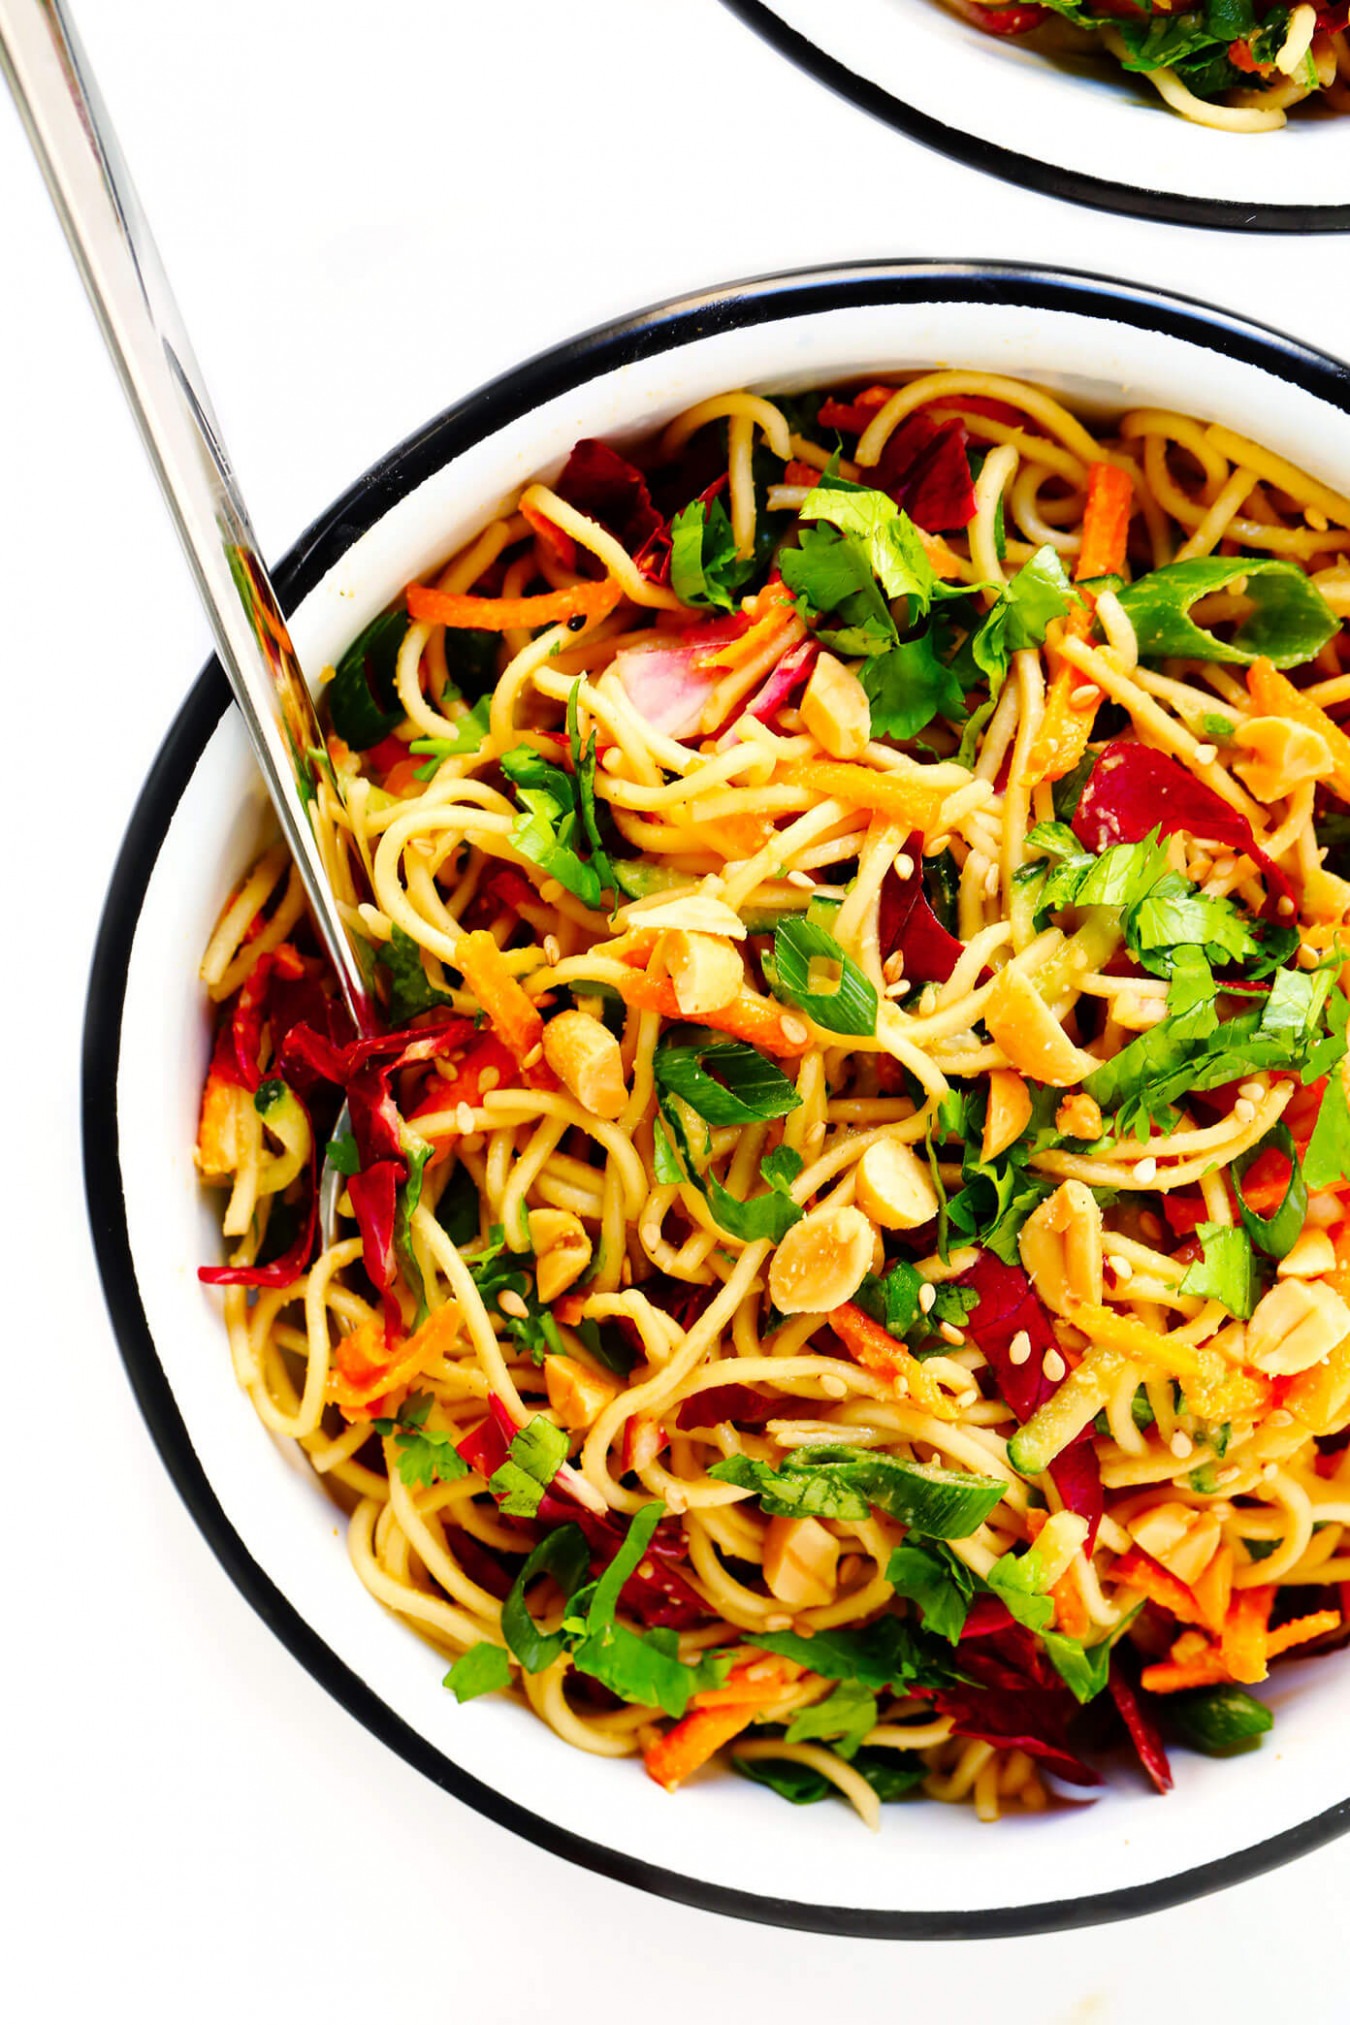 12 Vegetarian Dinner Recipes That Everyone Will LOVE ..